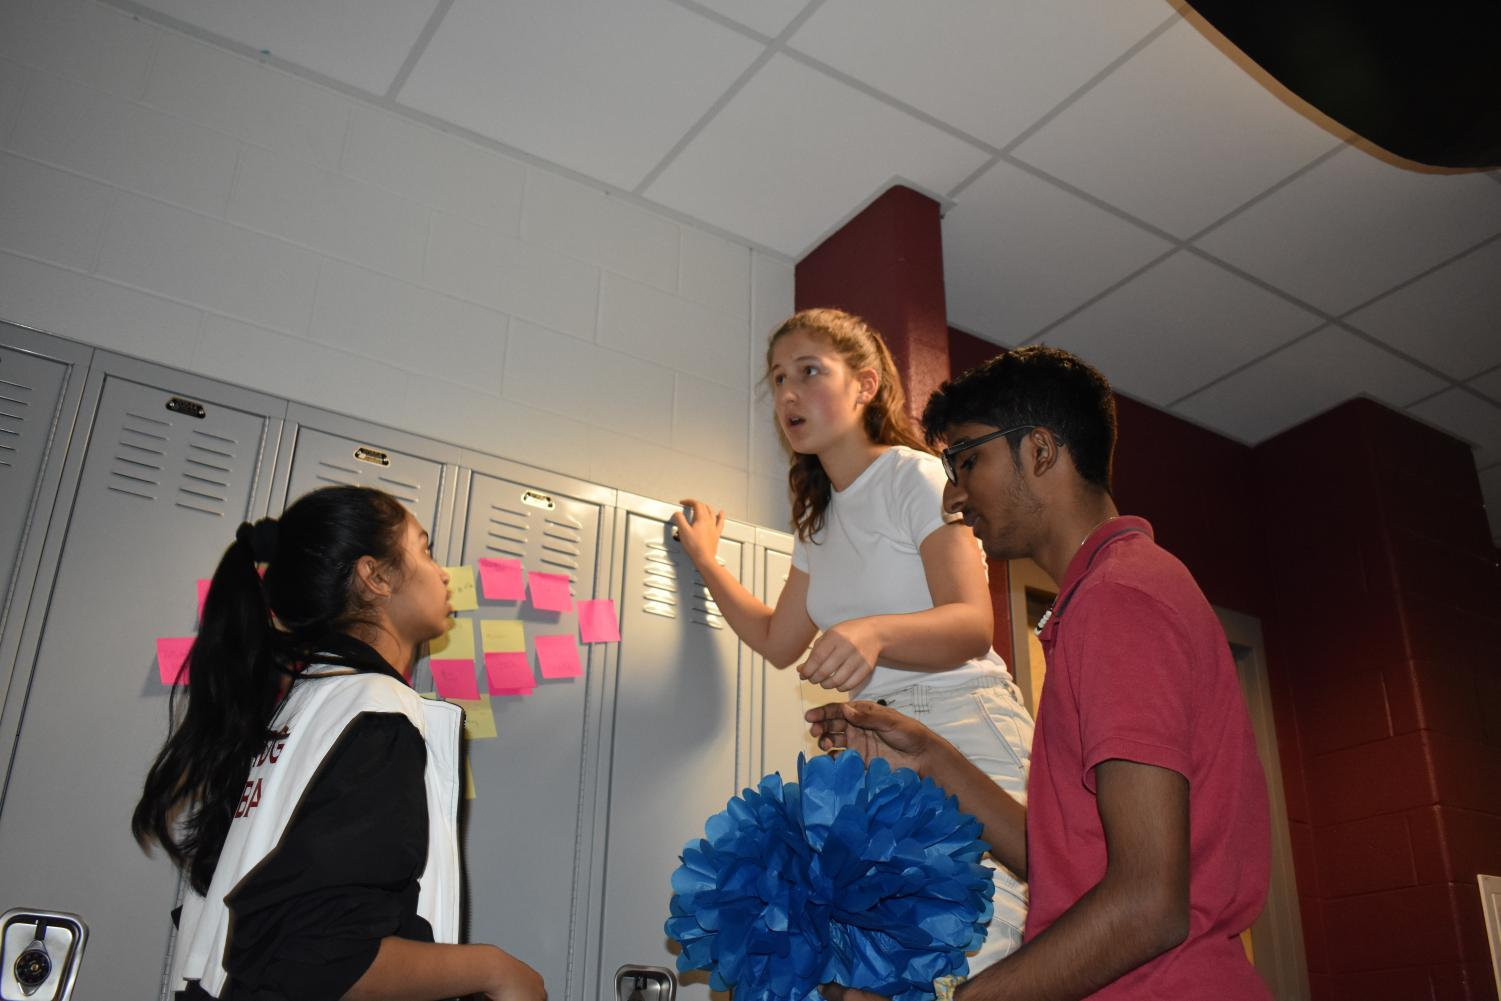 """Sophomore Anurag Gottipati helps decorate her  class hallway. Gottipati is an SCA representative for the sophomore class and was helping decide how to decorate the middle of the hallway. Gottipati explains the plans for the hallway, """"We're trying to make the rocket right now, and we are covering the ceilings with black paper so we can prevent any light from coming in because we're trying to mimic space."""""""